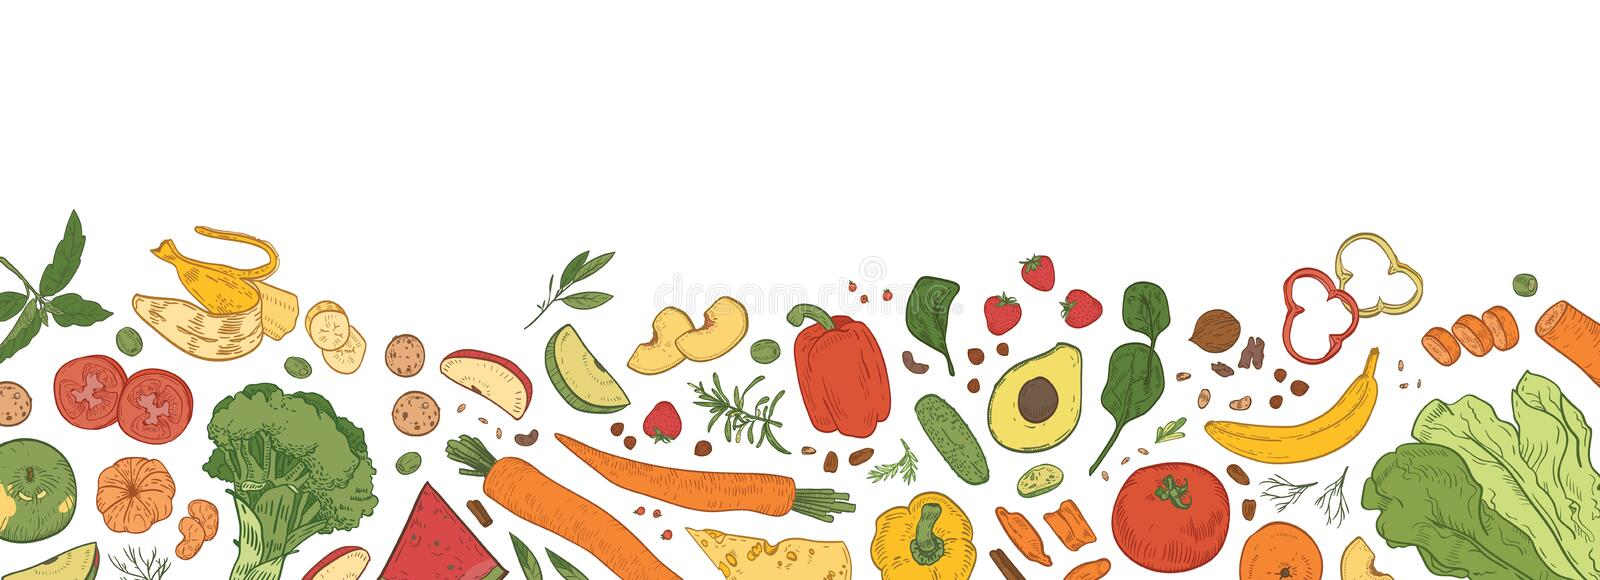 Horizontal backdrop with border consisted of fresh organic food. Banner template with tasty eco wholesome ripe vector illustration